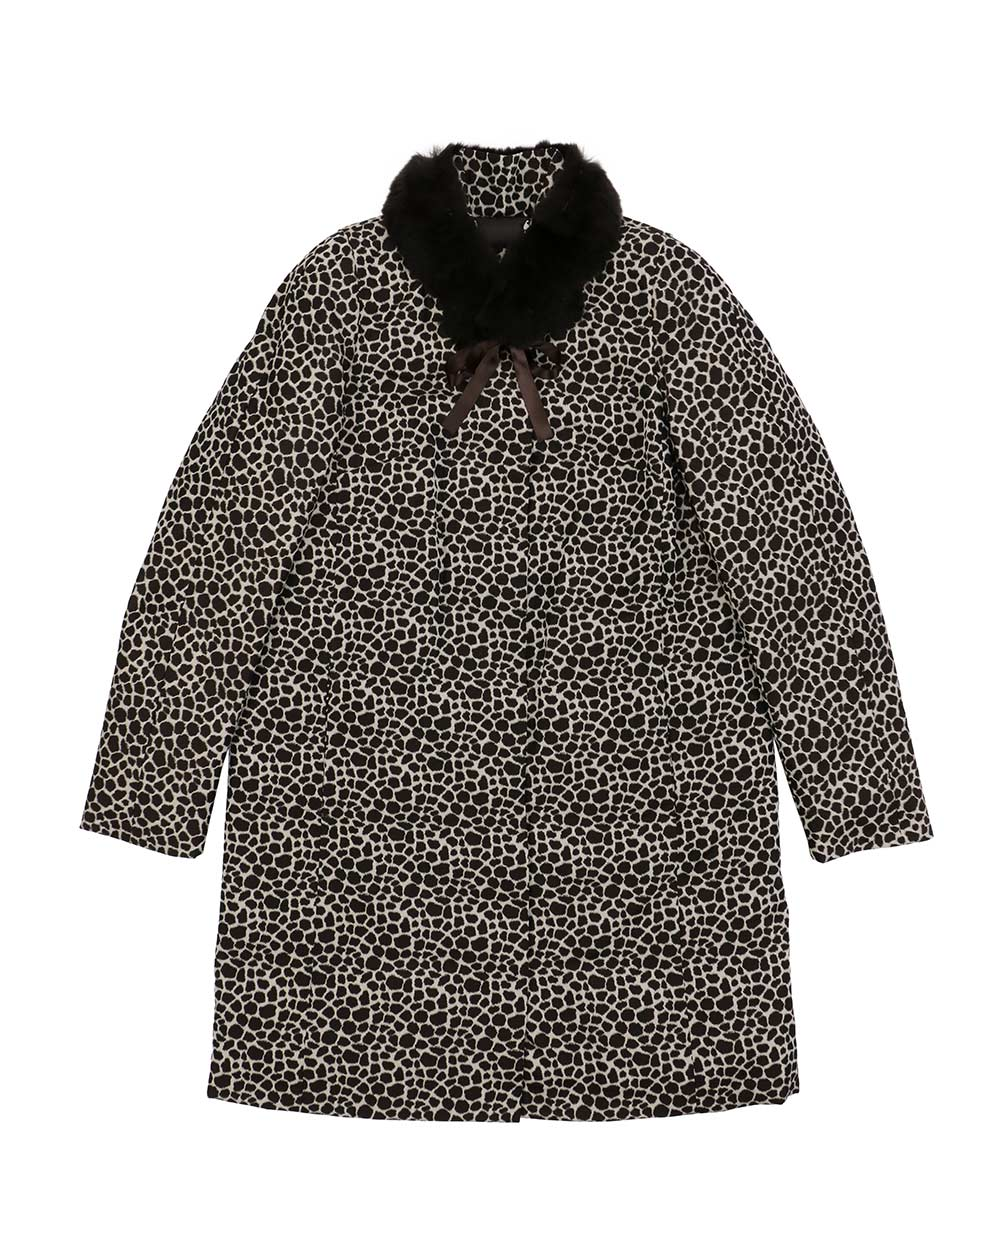 Leopard Printed Mid-Length Trench Coat